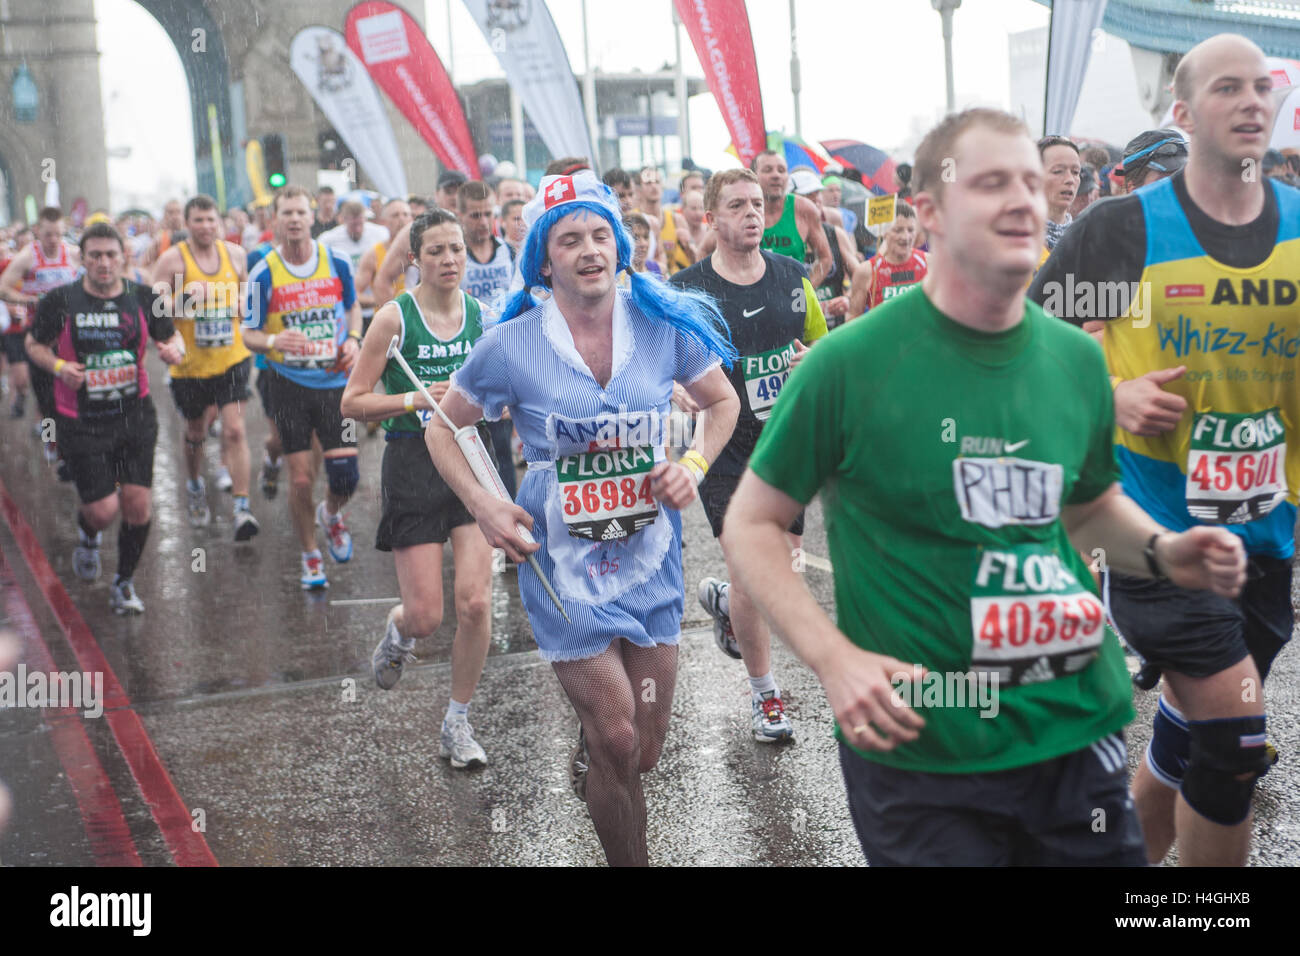 Runners participating running in iconic London Marathon,England. - Stock Image